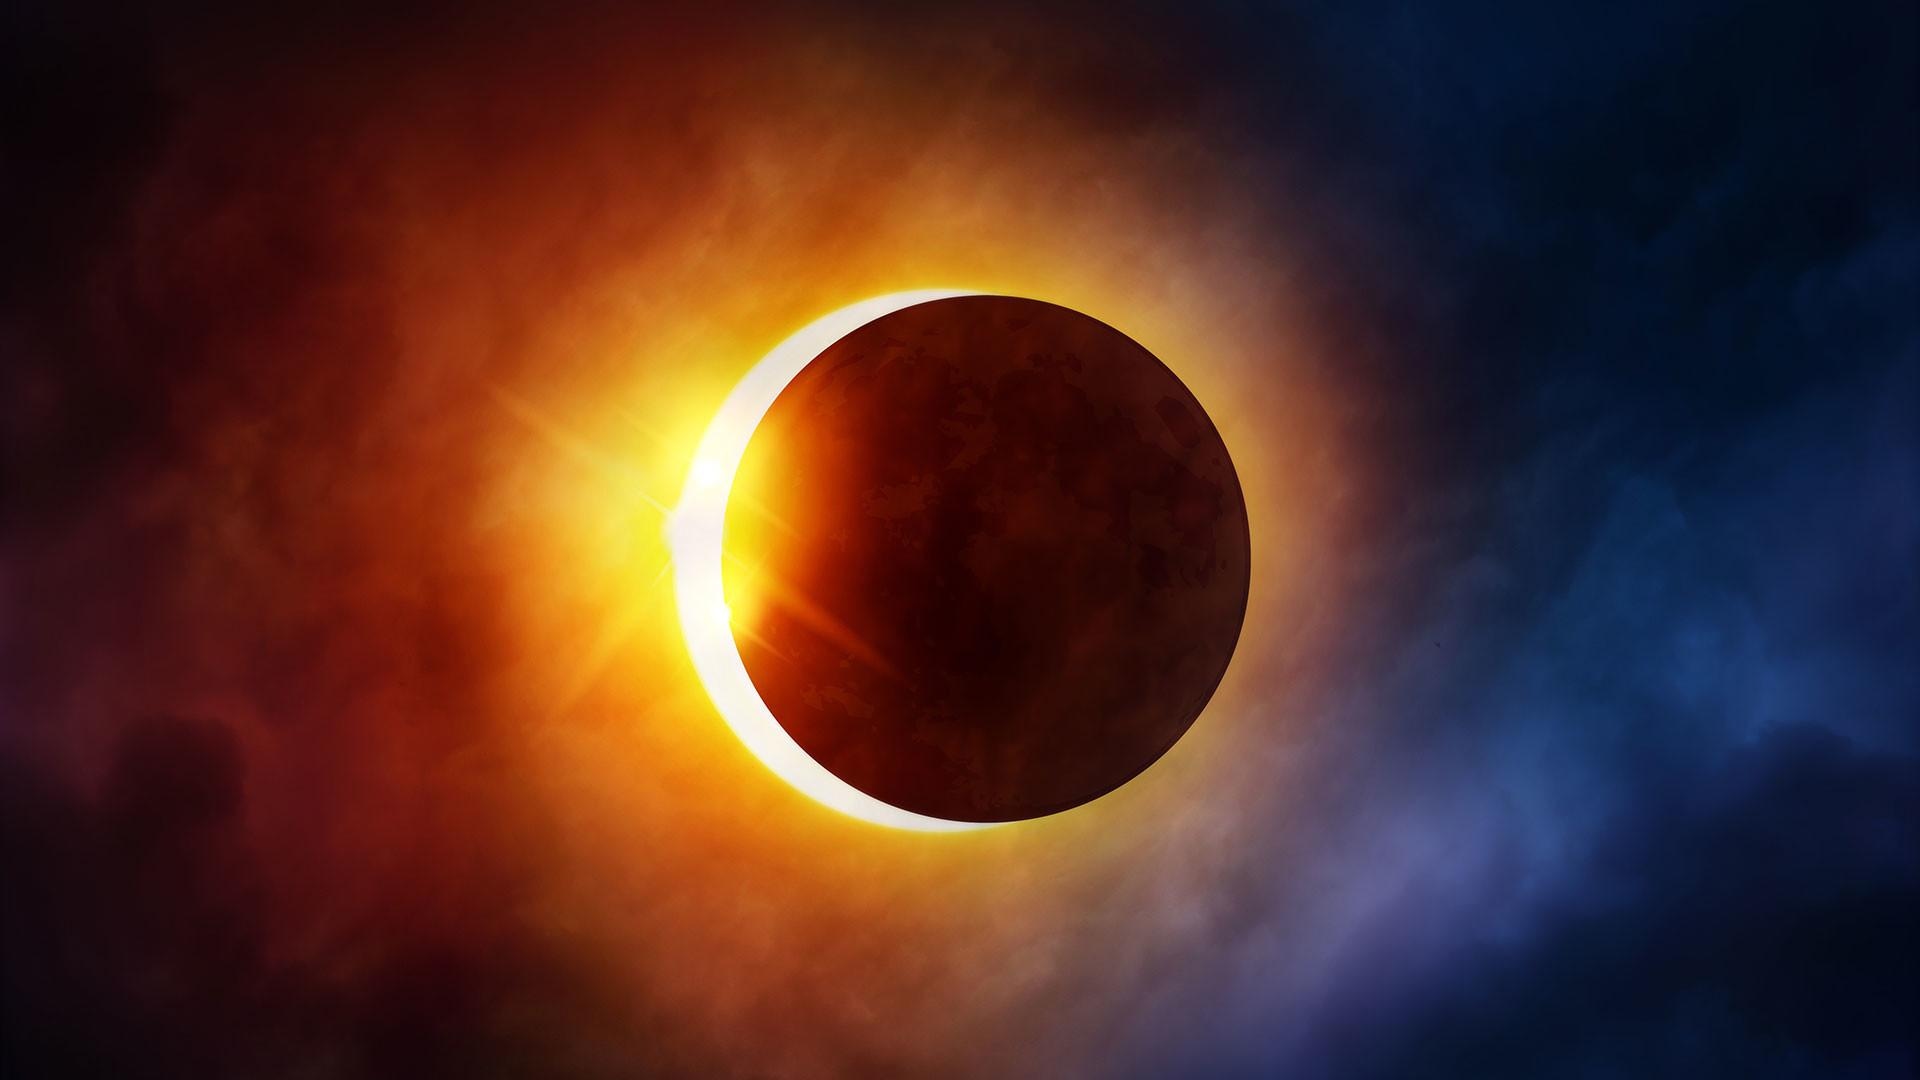 Solar Eclipse Wallpapers 20